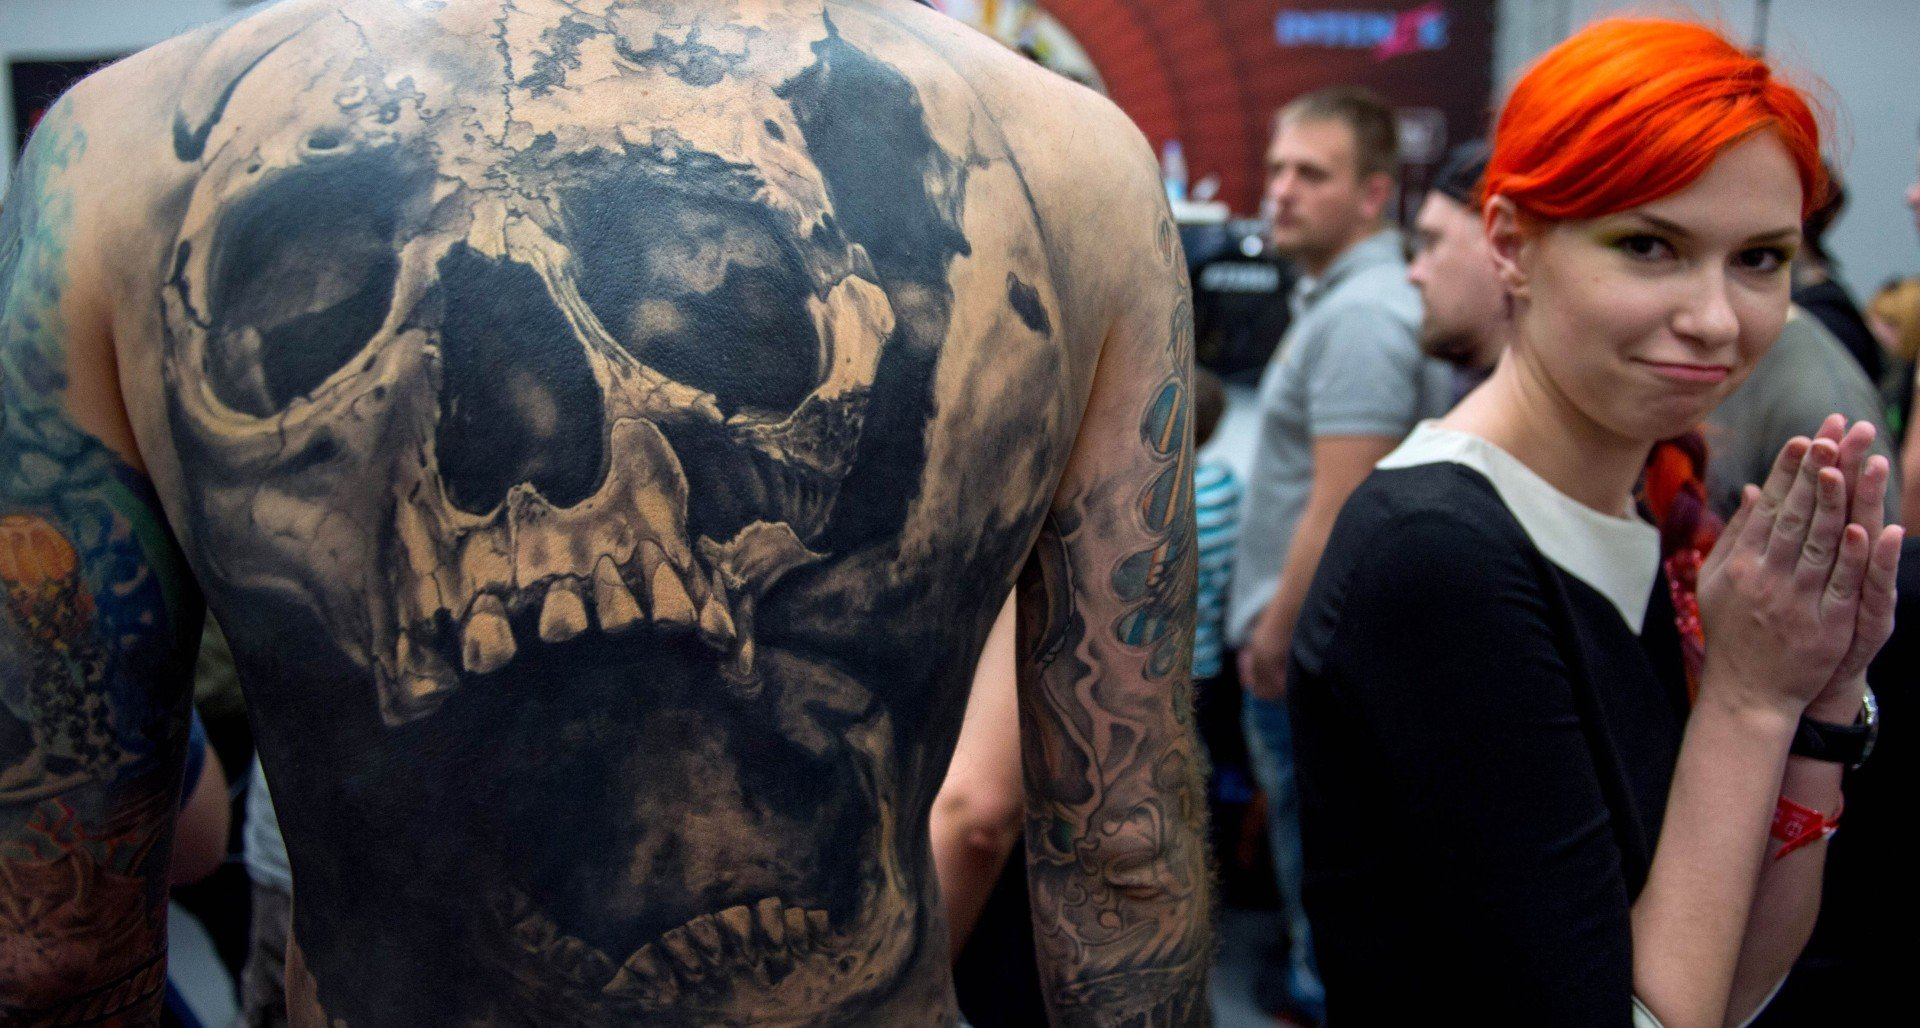 8f1f05de66aba The surprising science of tattoos, from medicinal benefits to how they  hijack the immune system | South China Morning Post